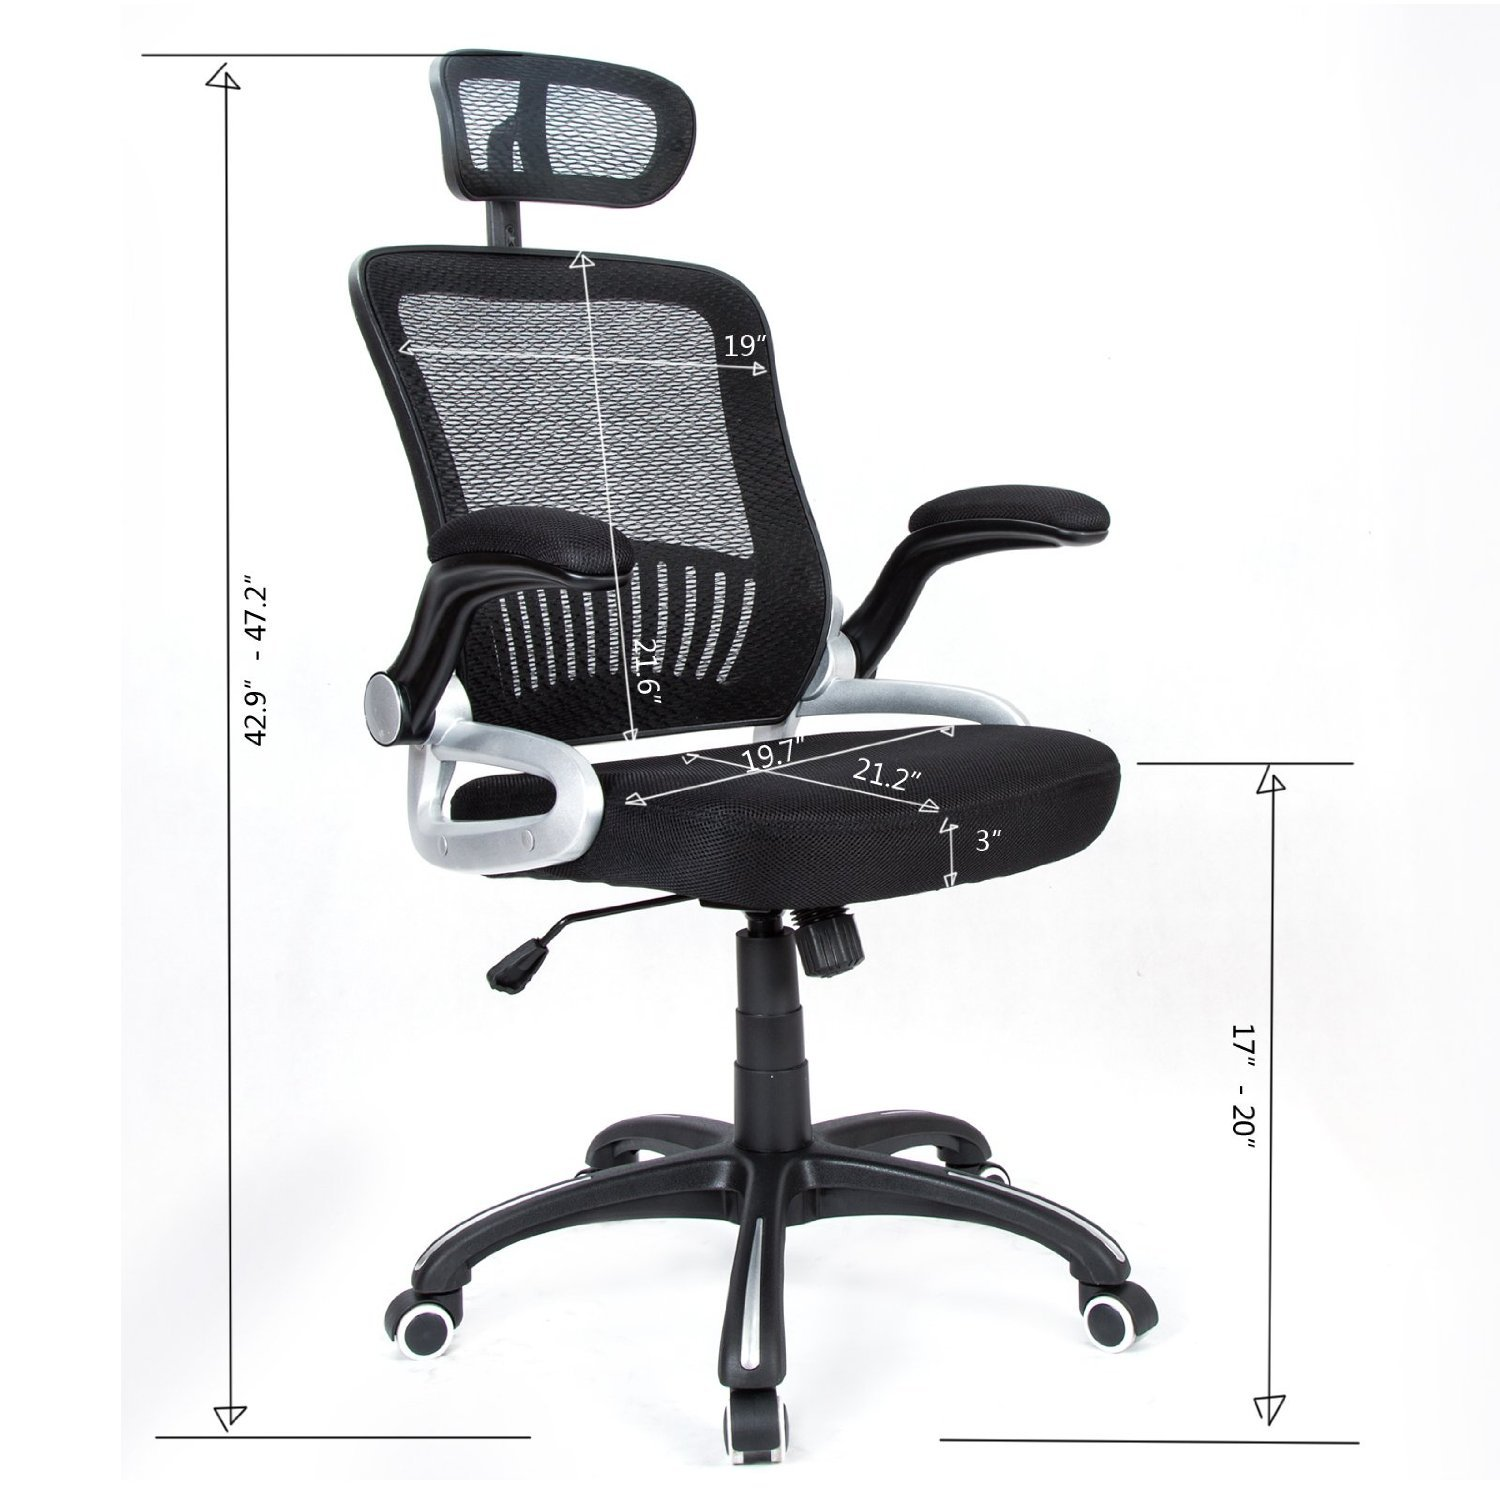 ergonomic chair reviews reddit baby shower alternatives best office chairs